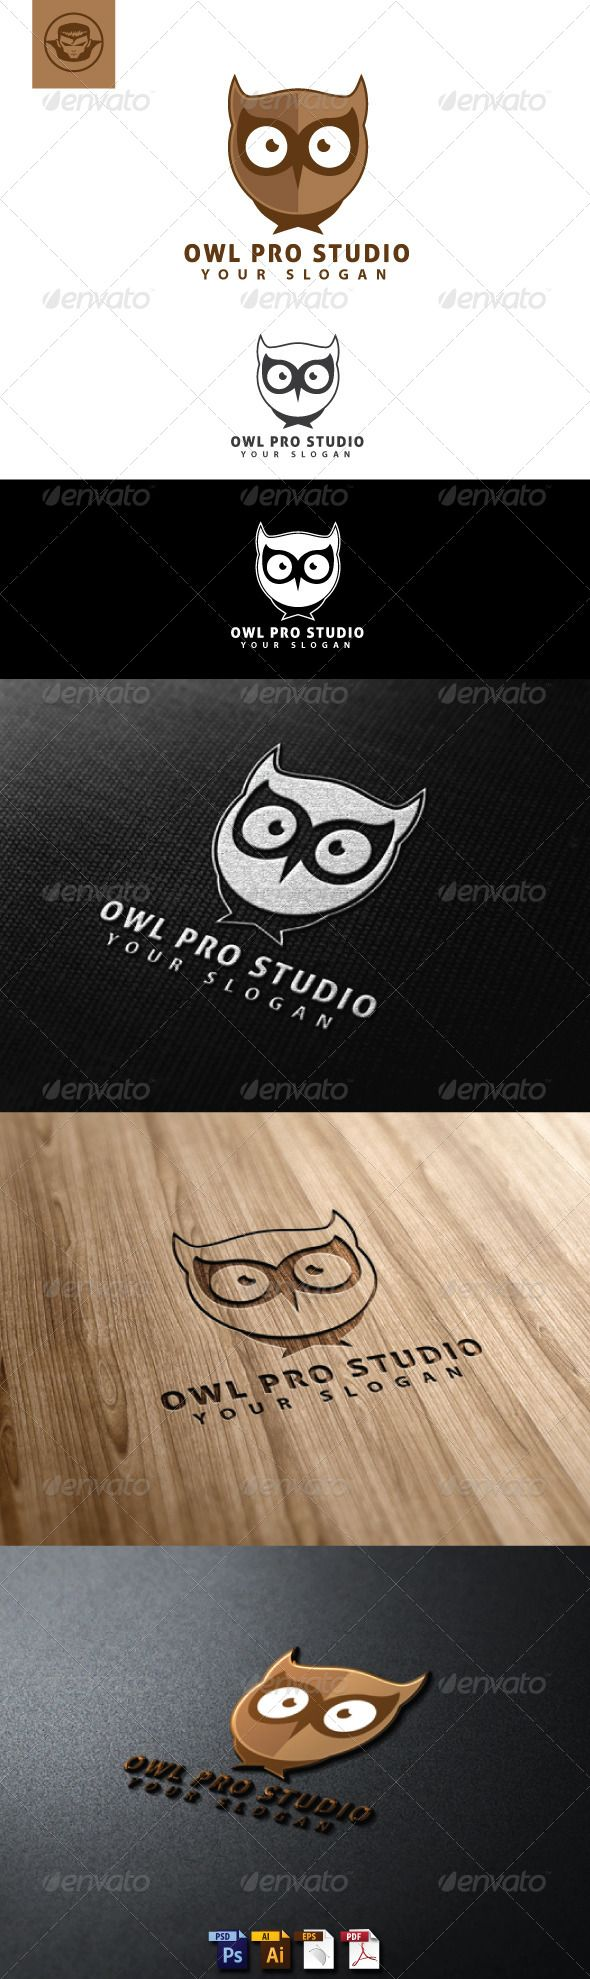 Owl Pro Studio Logo Template #GraphicRiver Owl Pro Studio Logo Template is An excellent logo template highly suitable for logo company, office, organization, studio, mascot These files consists of resizable vector format files like AI, EPS , and PDF . Also PSD format for raster version alternative. font used Aller Display >> .fontsquirrel /fonts/Aller Thanks and enjoy Don't Forget to rate Created: 29May13 GraphicsFilesIncluded: PhotoshopPSD #VectorEPS #AIIllustrator Layered: Yes…